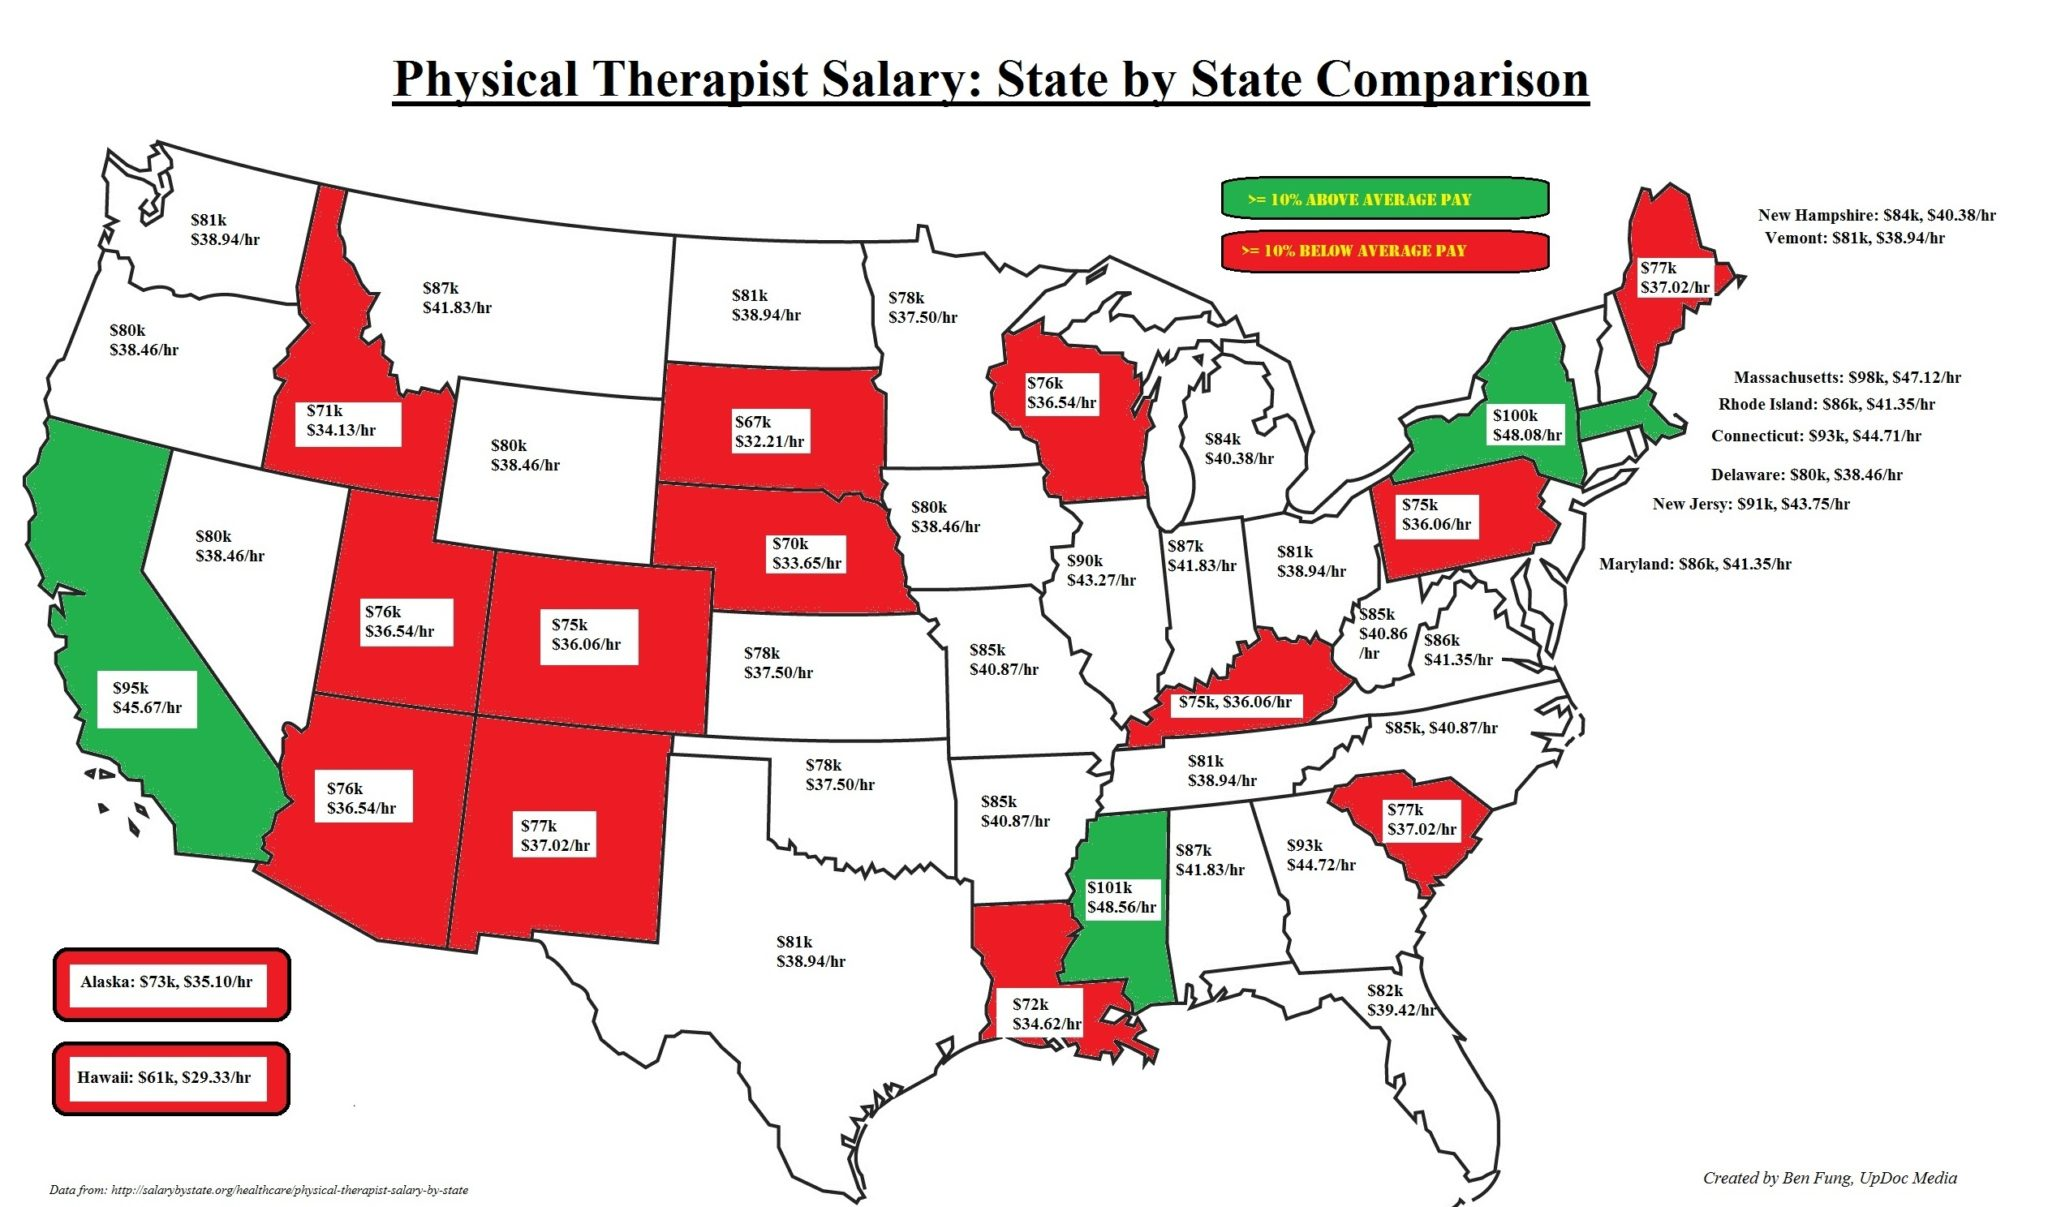 the 2015 physical therapy job market outlook (version 2.0, Human Body